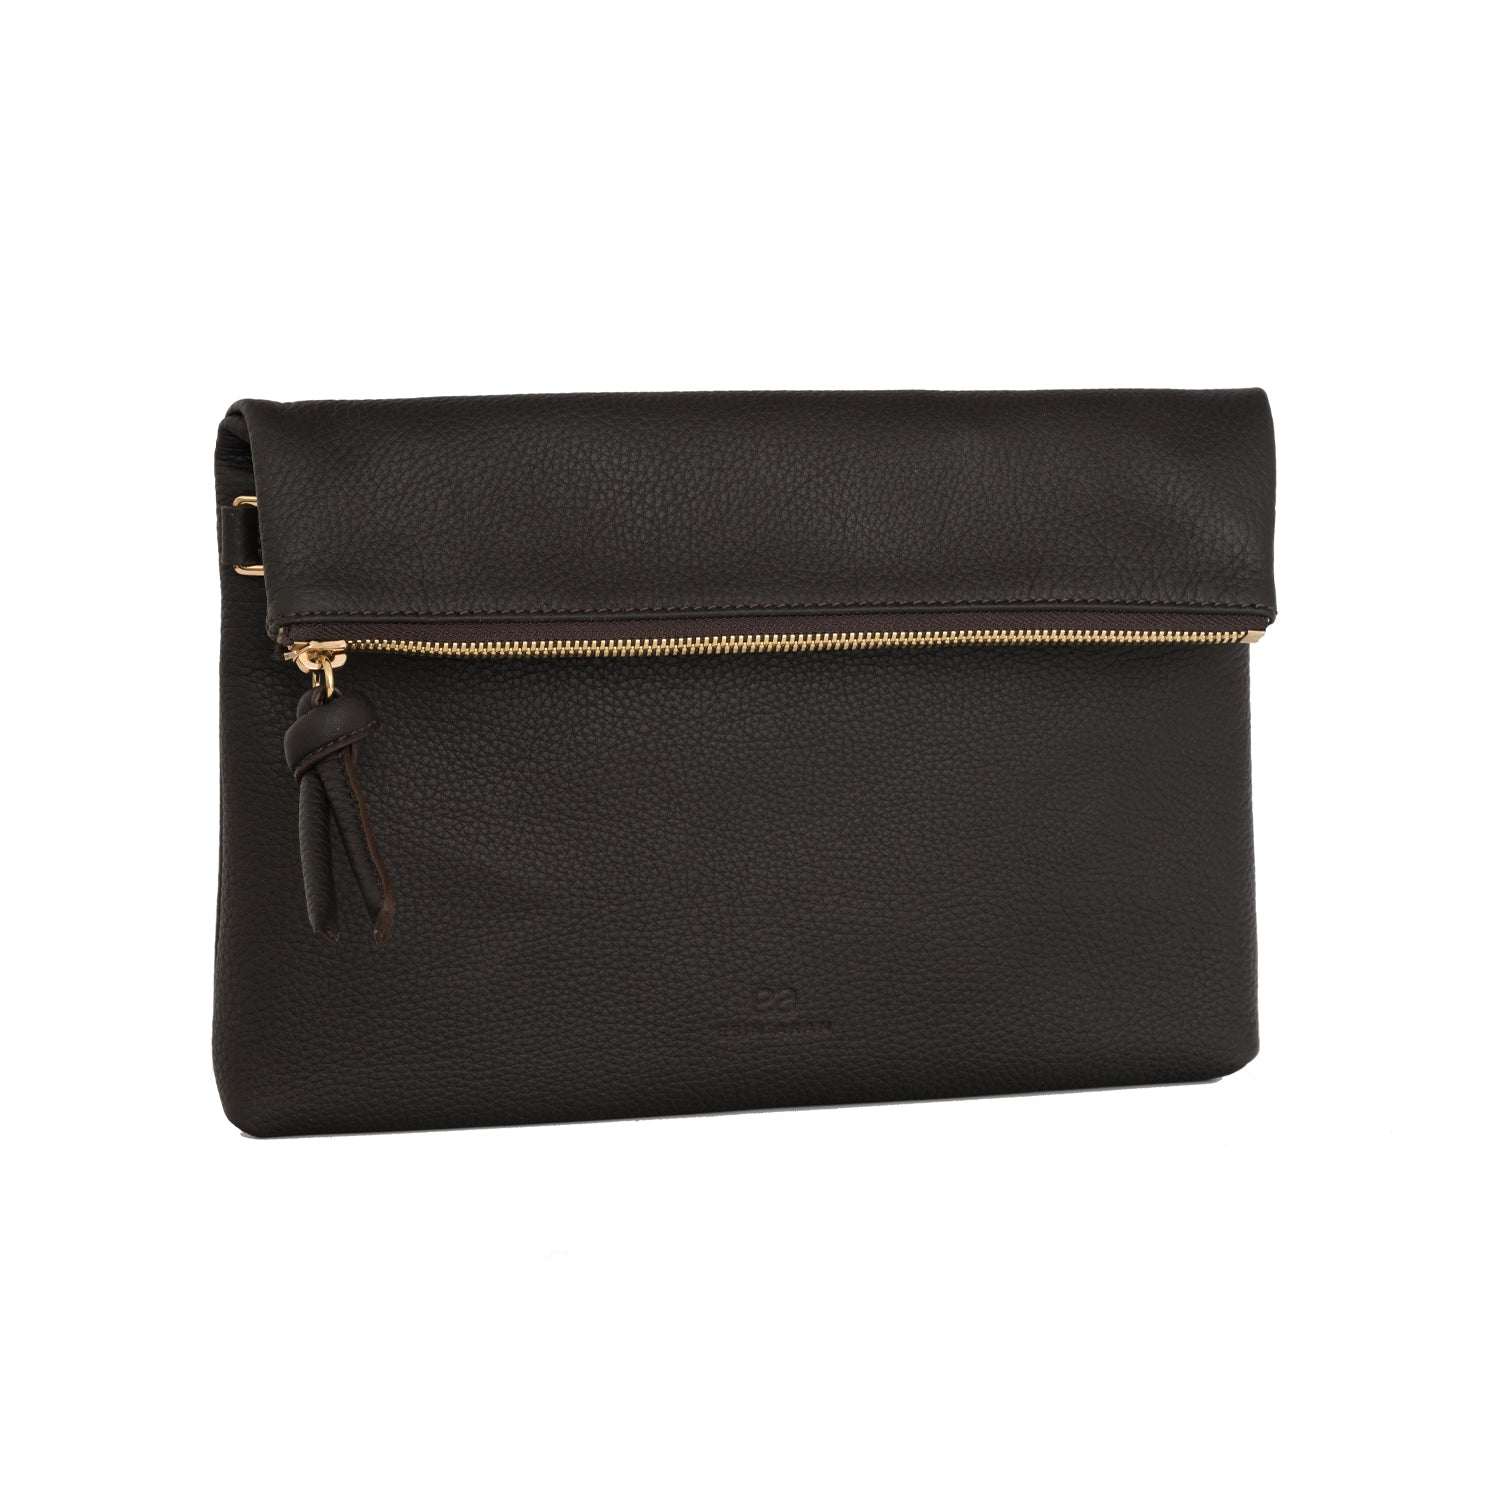 A brown convertible leather crossbody bag for women with a zipper that could be used as a clutch in the evening, side image.